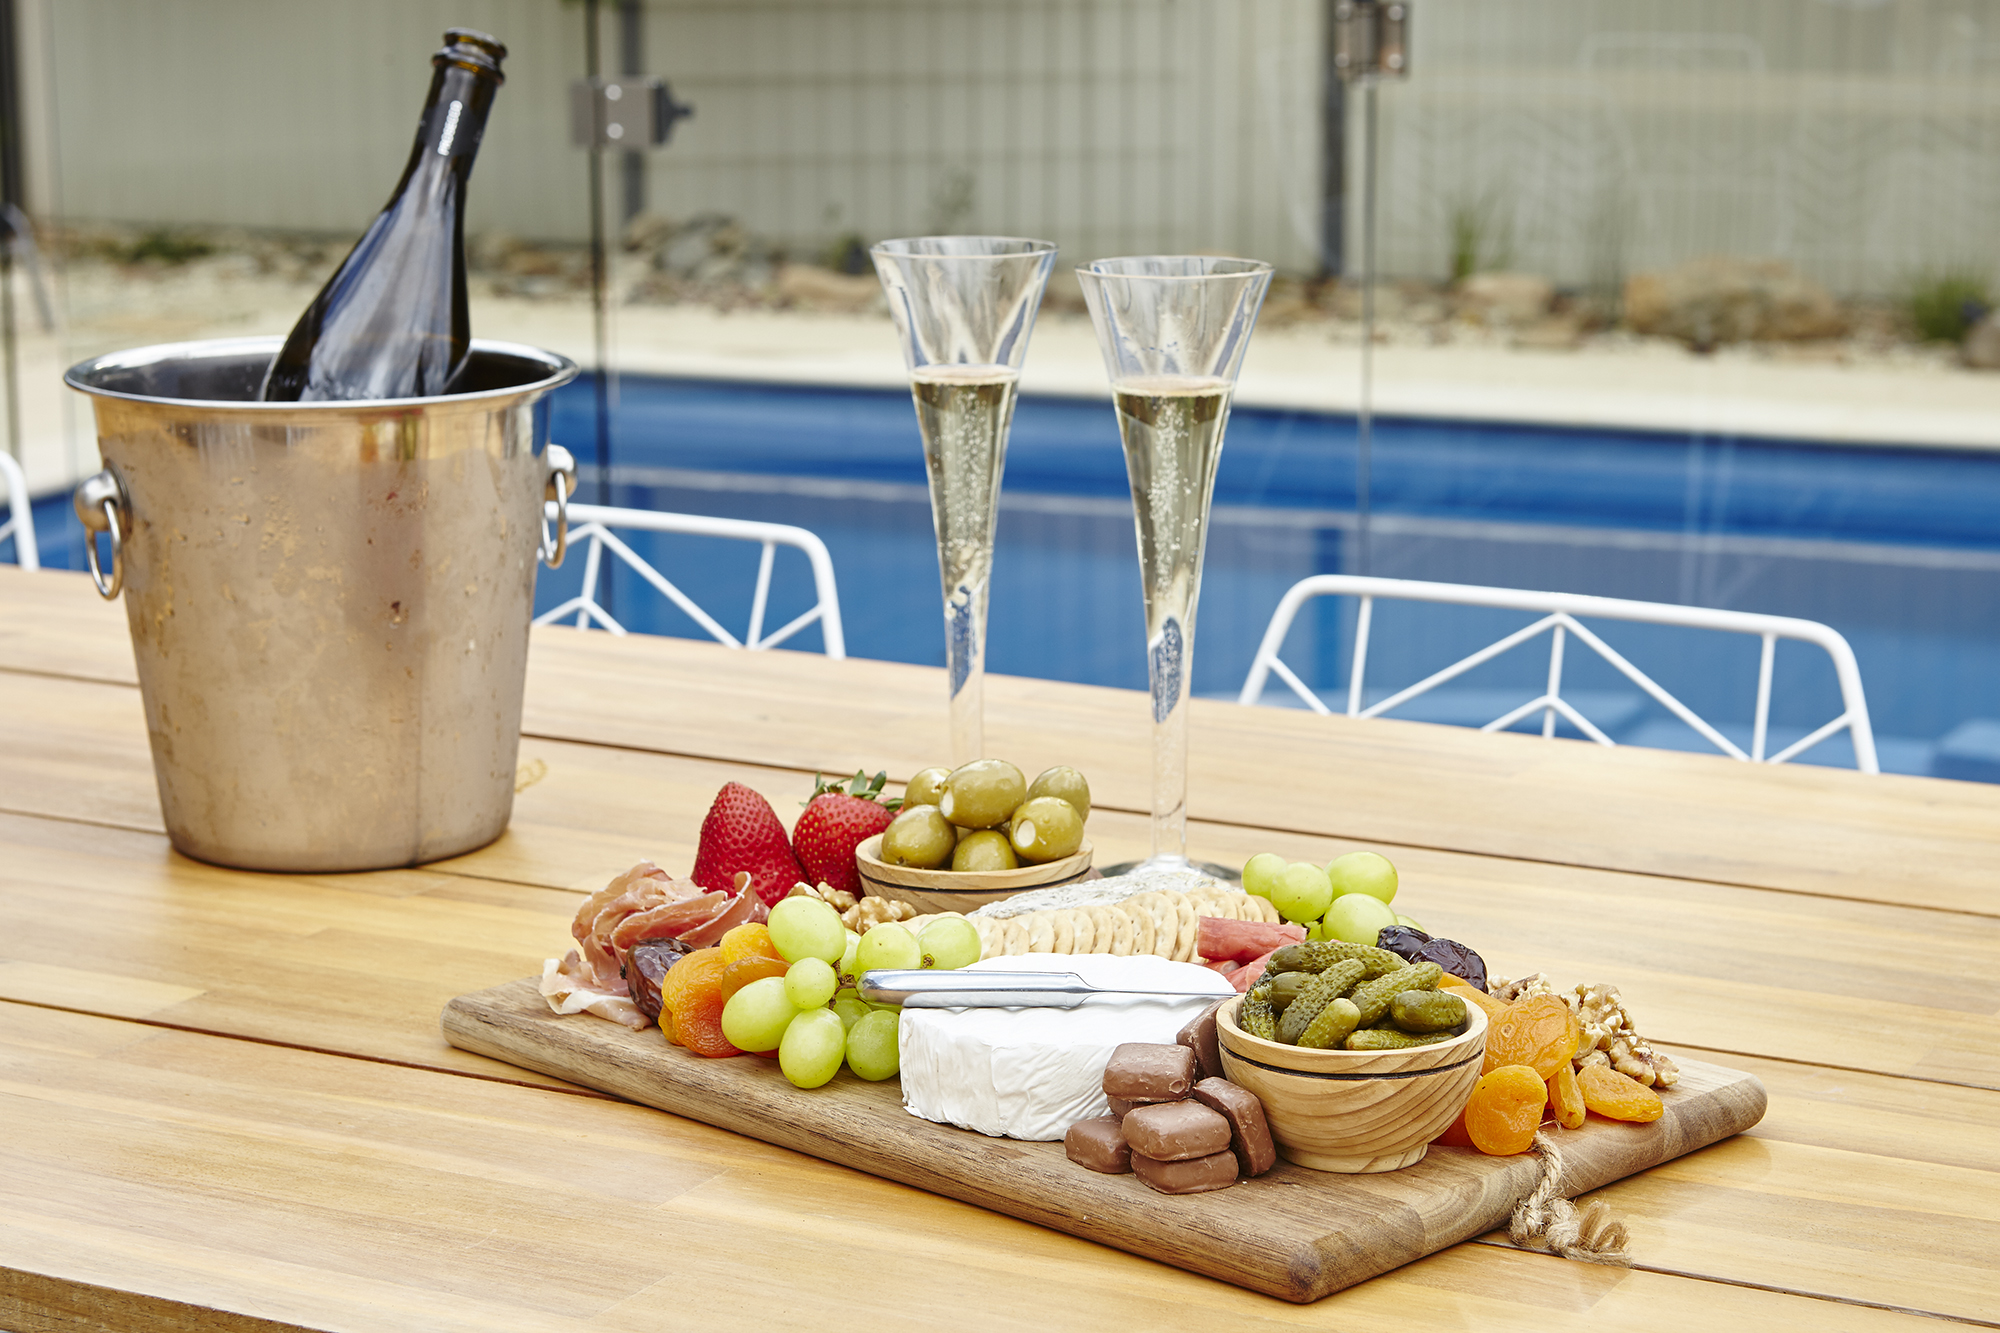 Limewedge  Platters by the pool